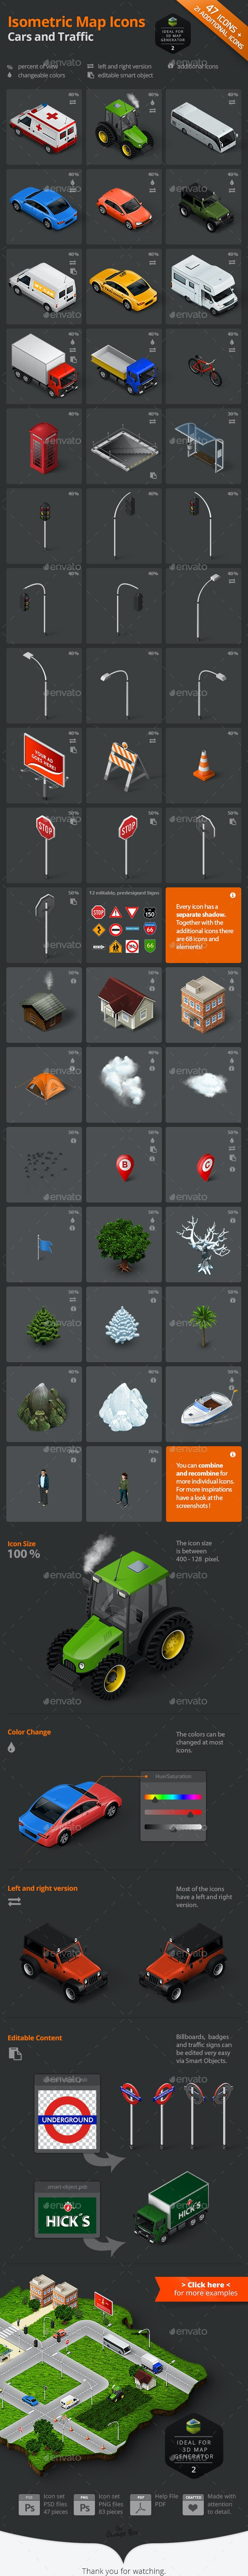 Isometric Map Icons - Cars and Traffic - Objects Icons